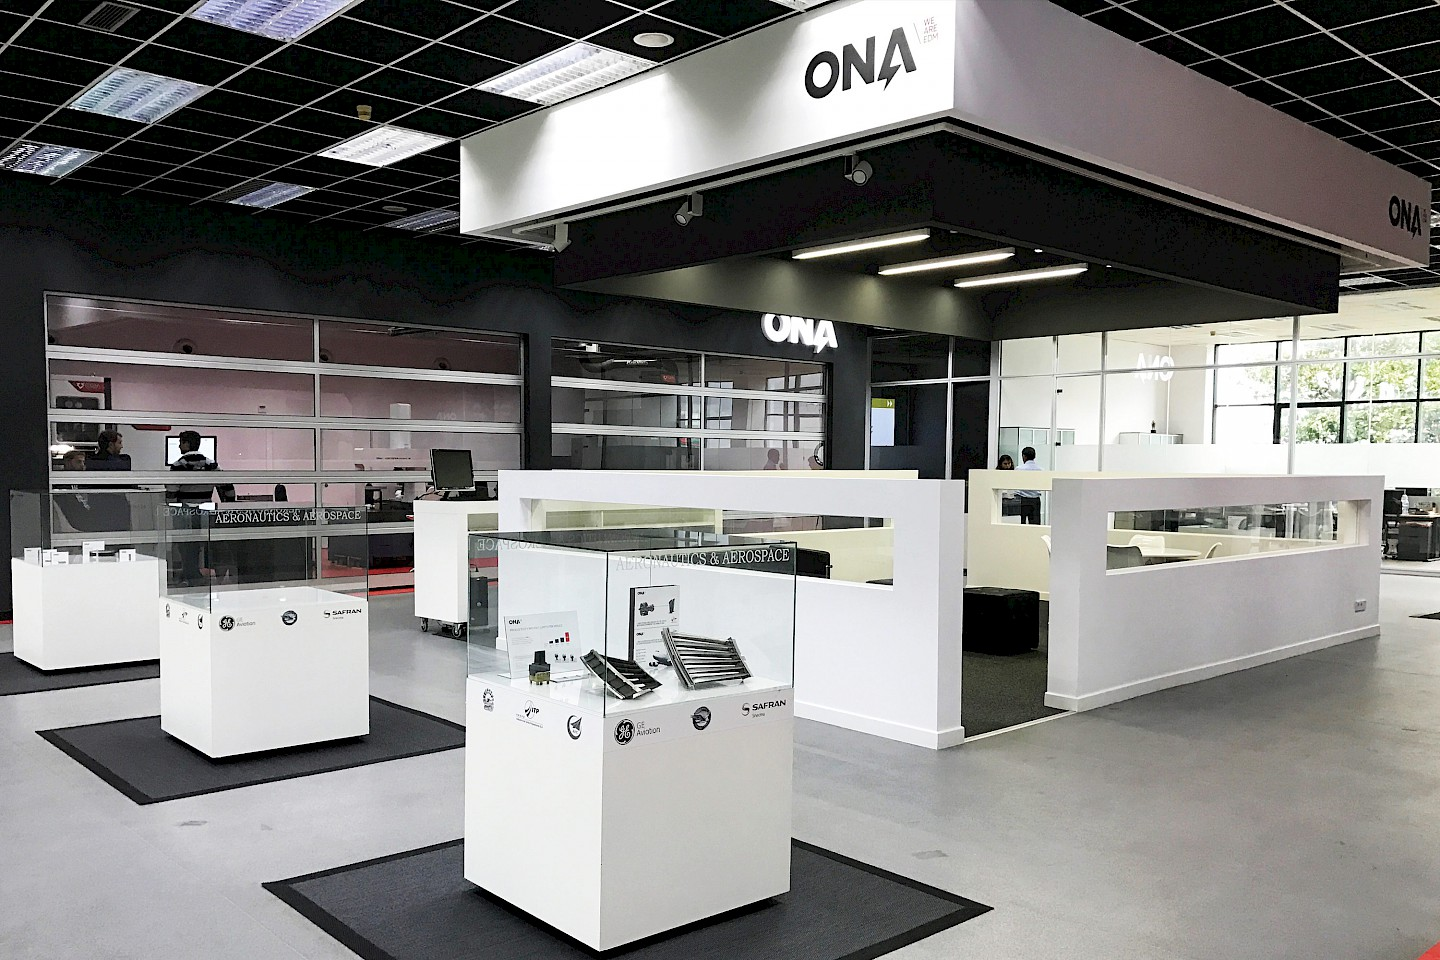 interiorismo technology digital 02 branding stand narrative spaces move ona design